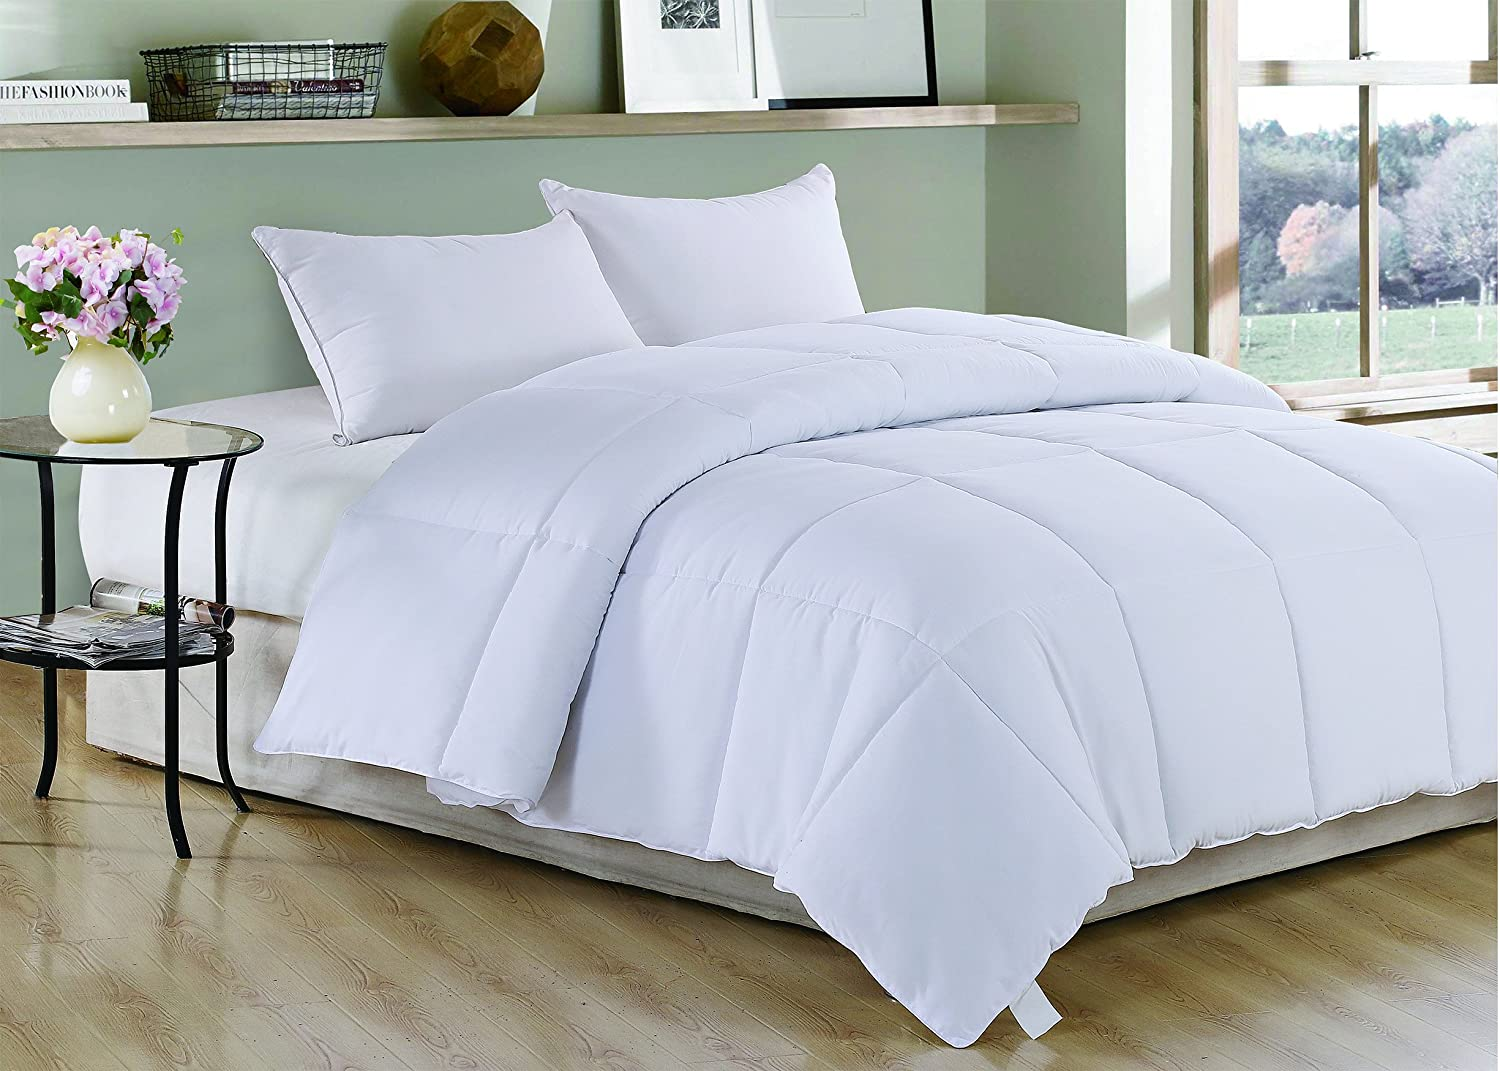 on duvets duvetspillowswhiteessentials duvet nav chest bedding sale essentials in for products pillows linen en white